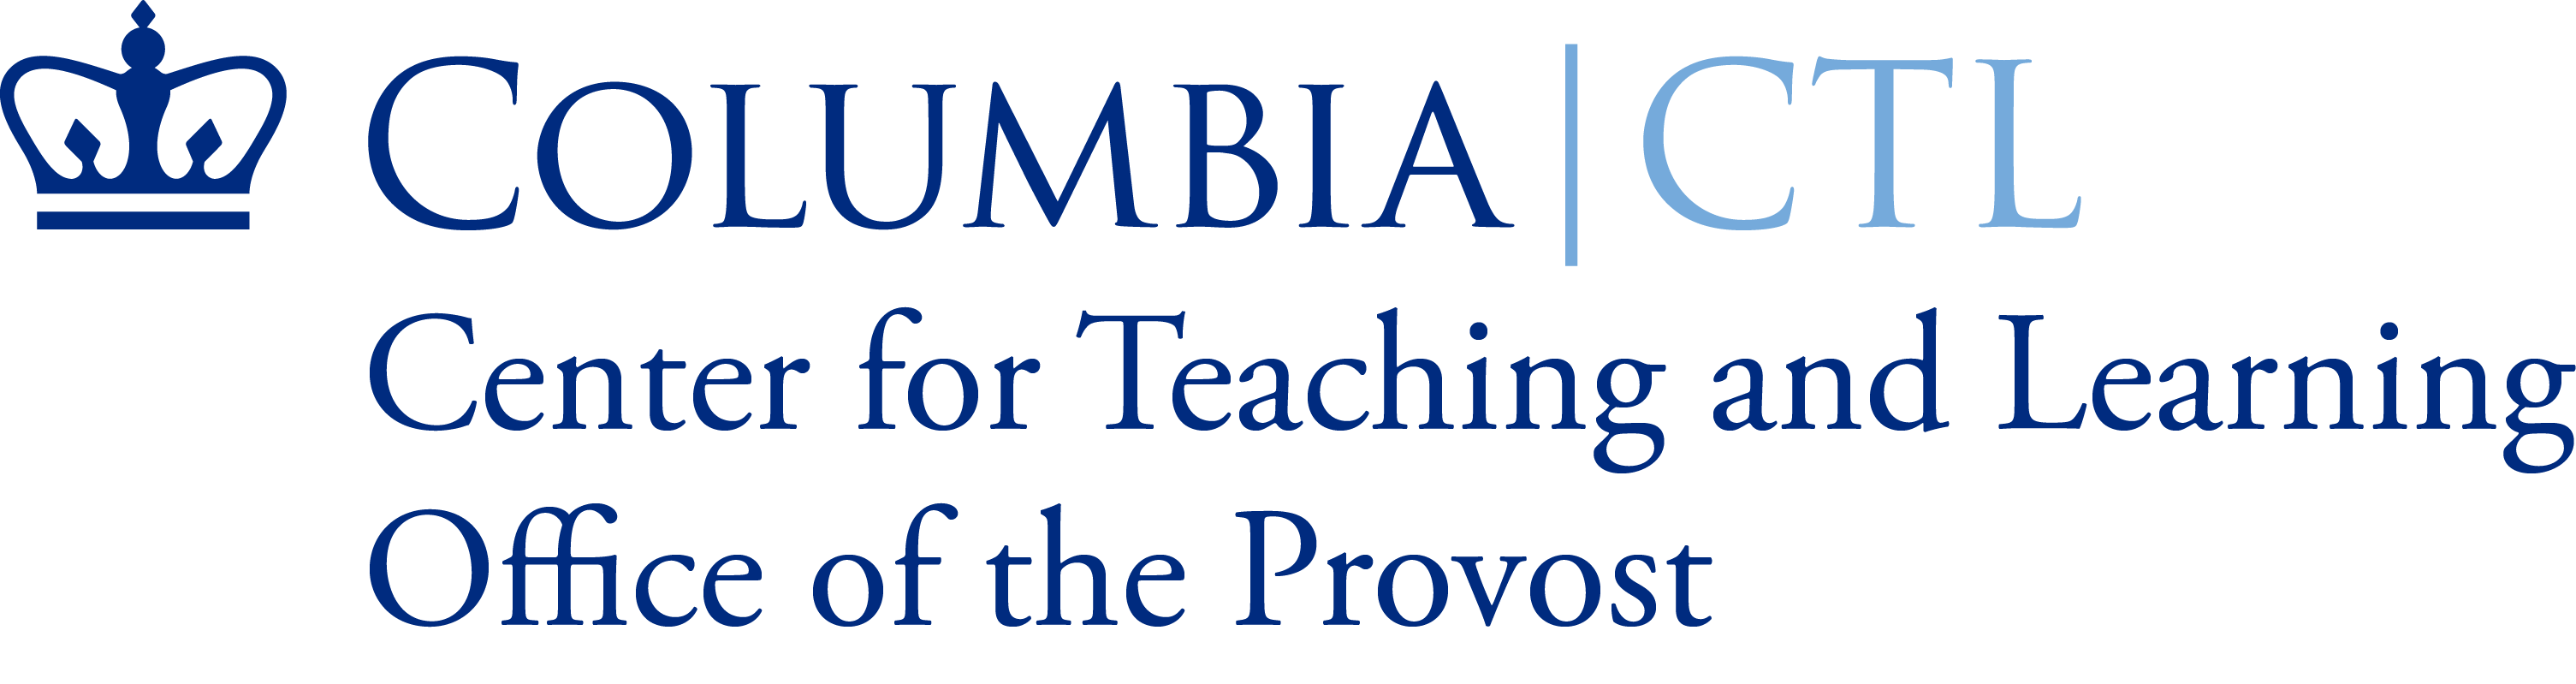 The Columbia Center for Teaching and Learning